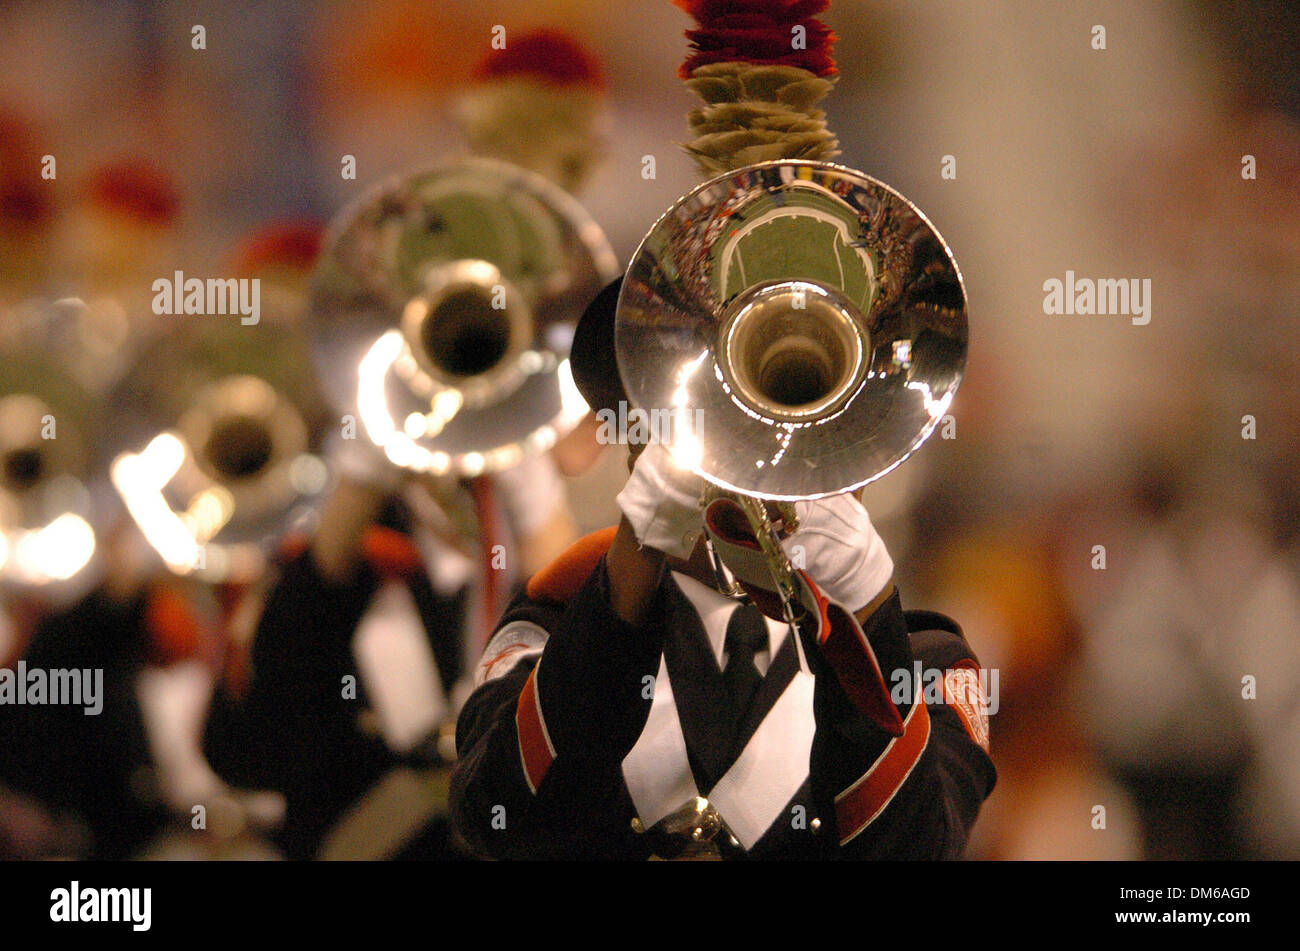 Dec 29, 2004; San Antonio, TX, USA; NCAA Football - Ohio State band plays before the start of the 2004 MasterCard Alamo Bowl at the Alamo dome in San Antonio. - Stock Image